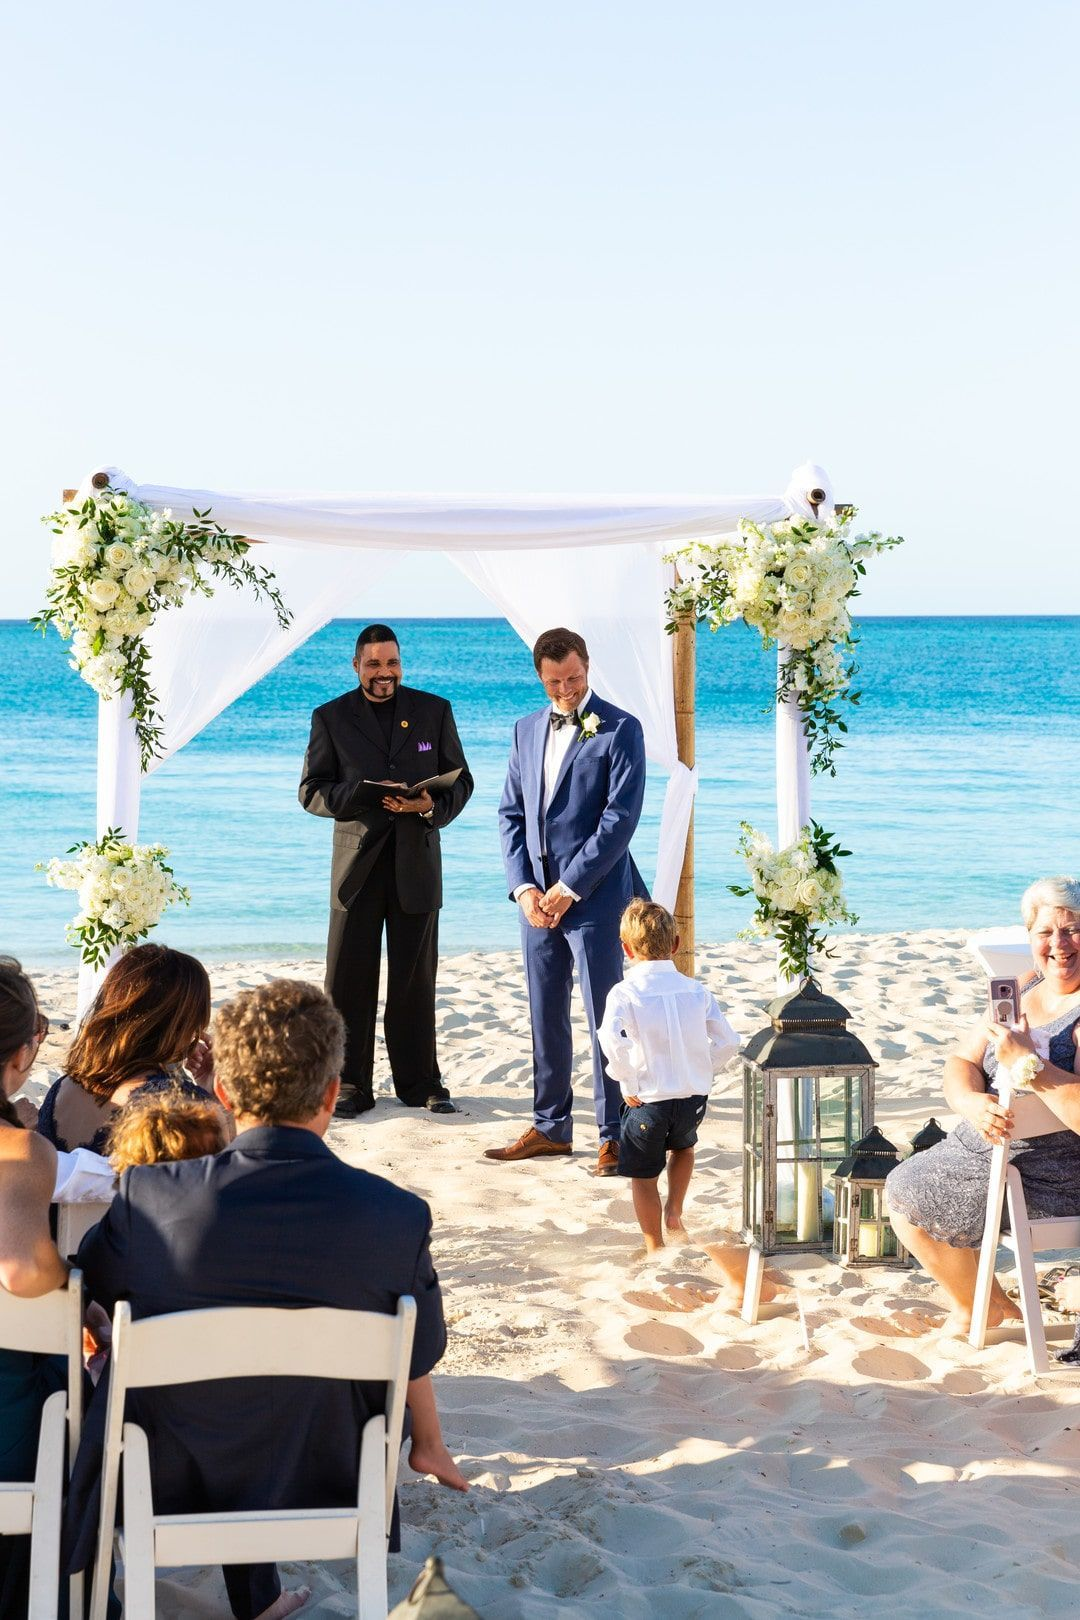 Classy Wedding For A Non Traditional Bride In The Turks Caicos Islands Adriana Weddings In 2020 Turks And Caicos Wedding Beach Wedding White Classy Wedding